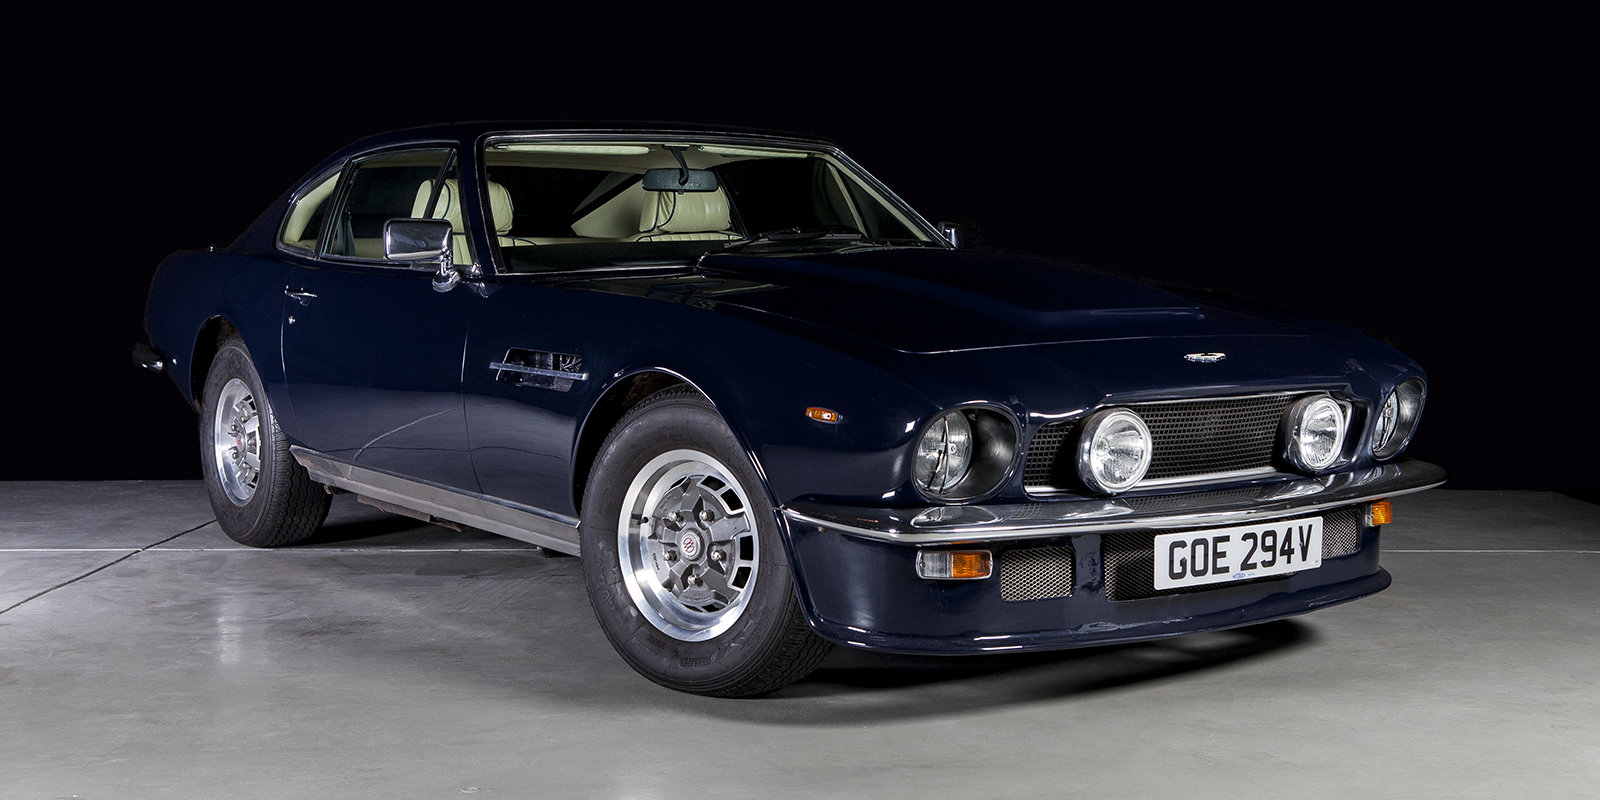 1980 Rare Aston Martin V8 Series IV Oscar India (LHD) For Sale (picture 2 of 6)